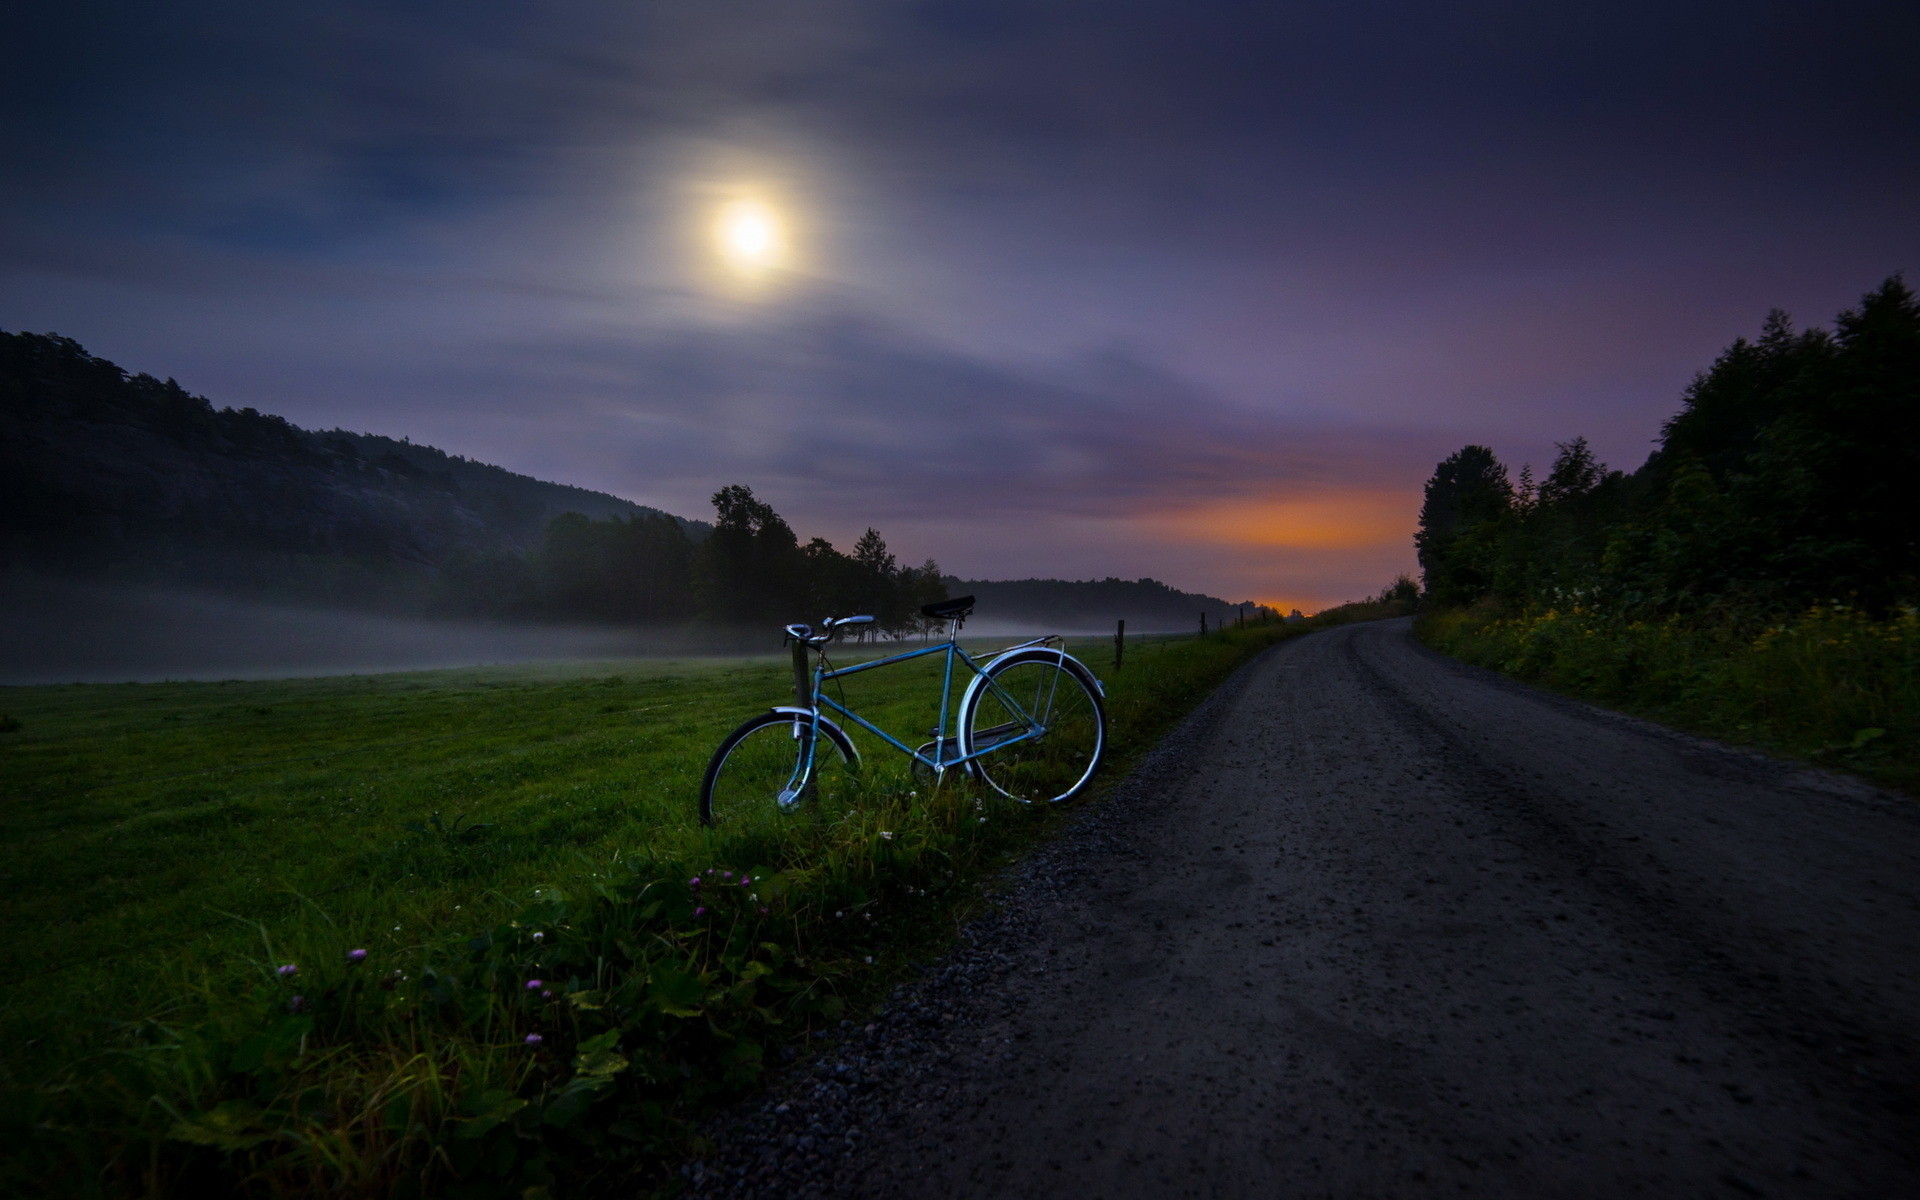 1920x1200 Bike, country road, night, clouds and fog: